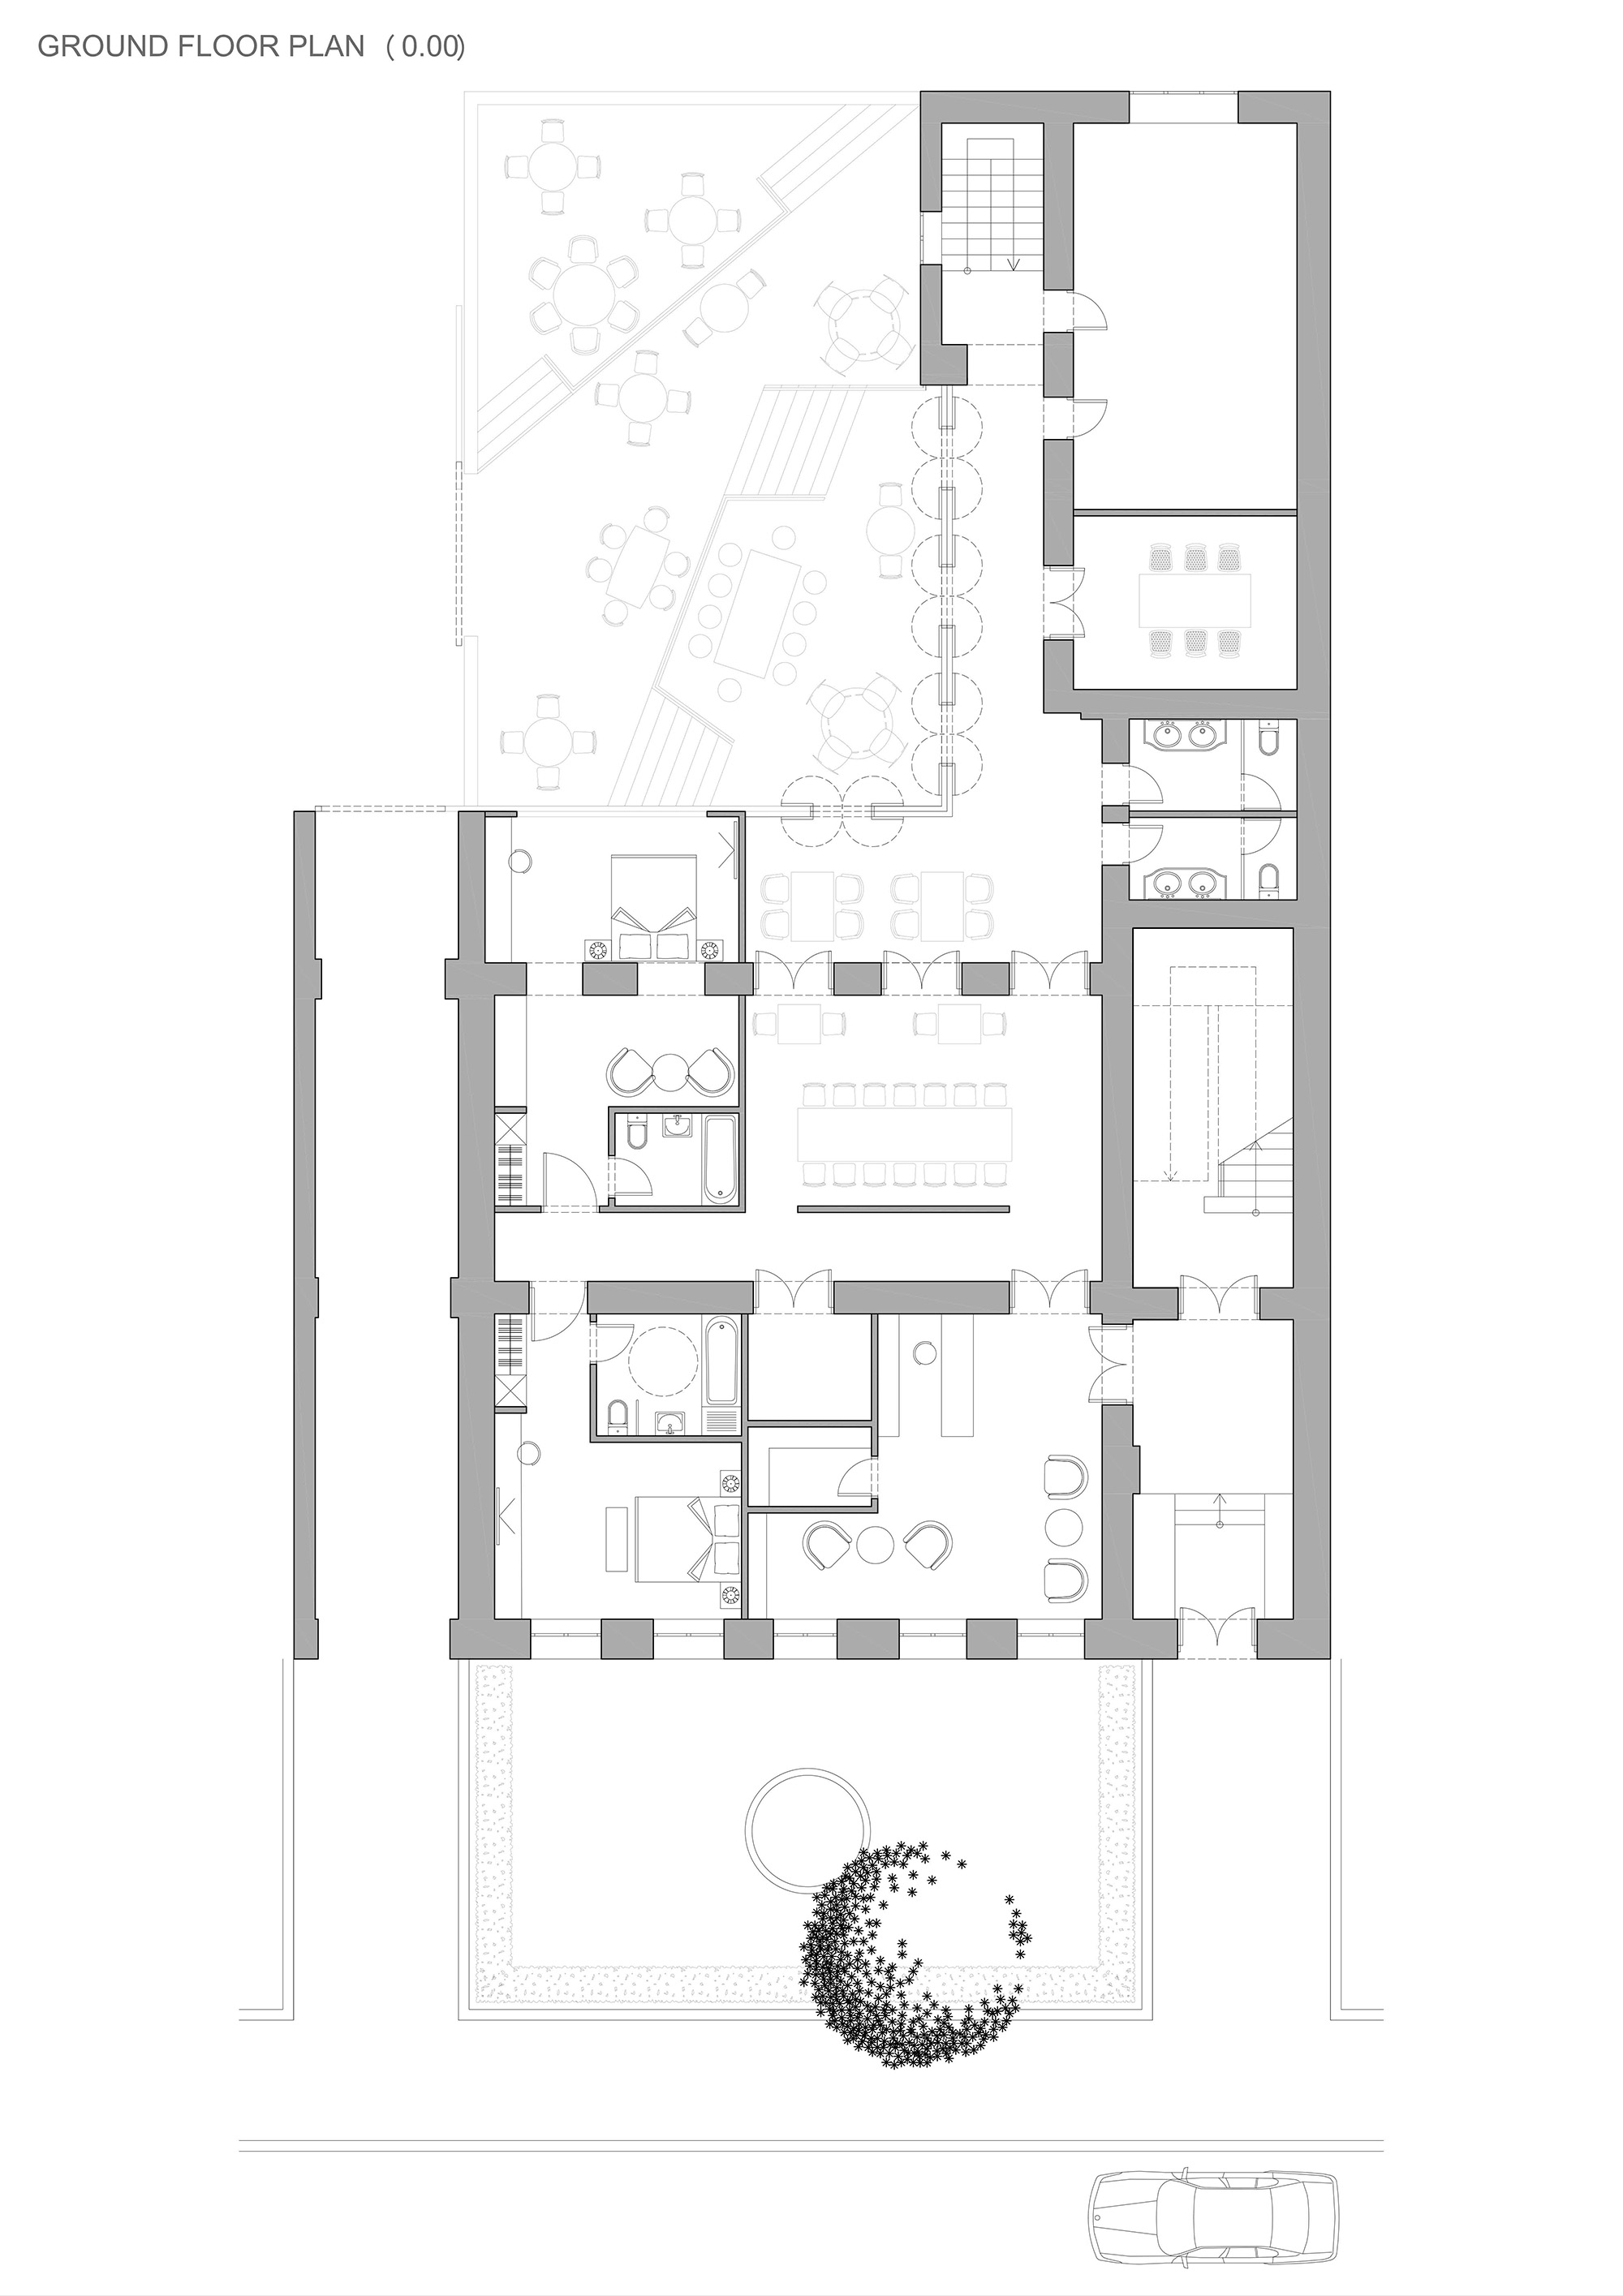 Jazz Hotel ground level plan 0.00 Surgula Studio